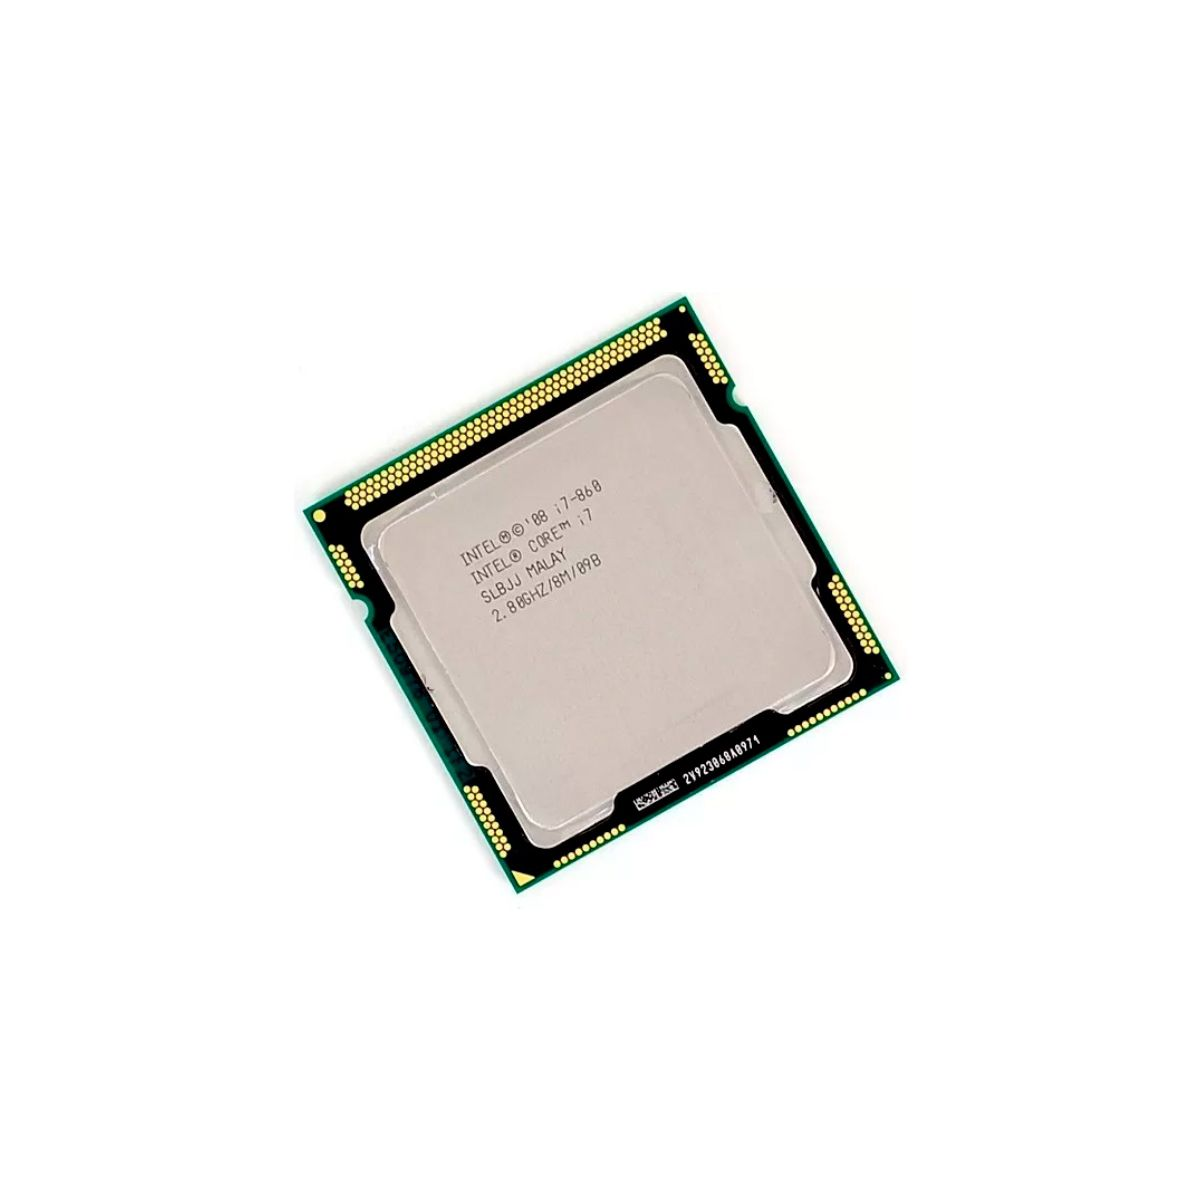 CPU 1156 | CORE I7 860 | SLBJJ | INTEL | 2.80 GHZ